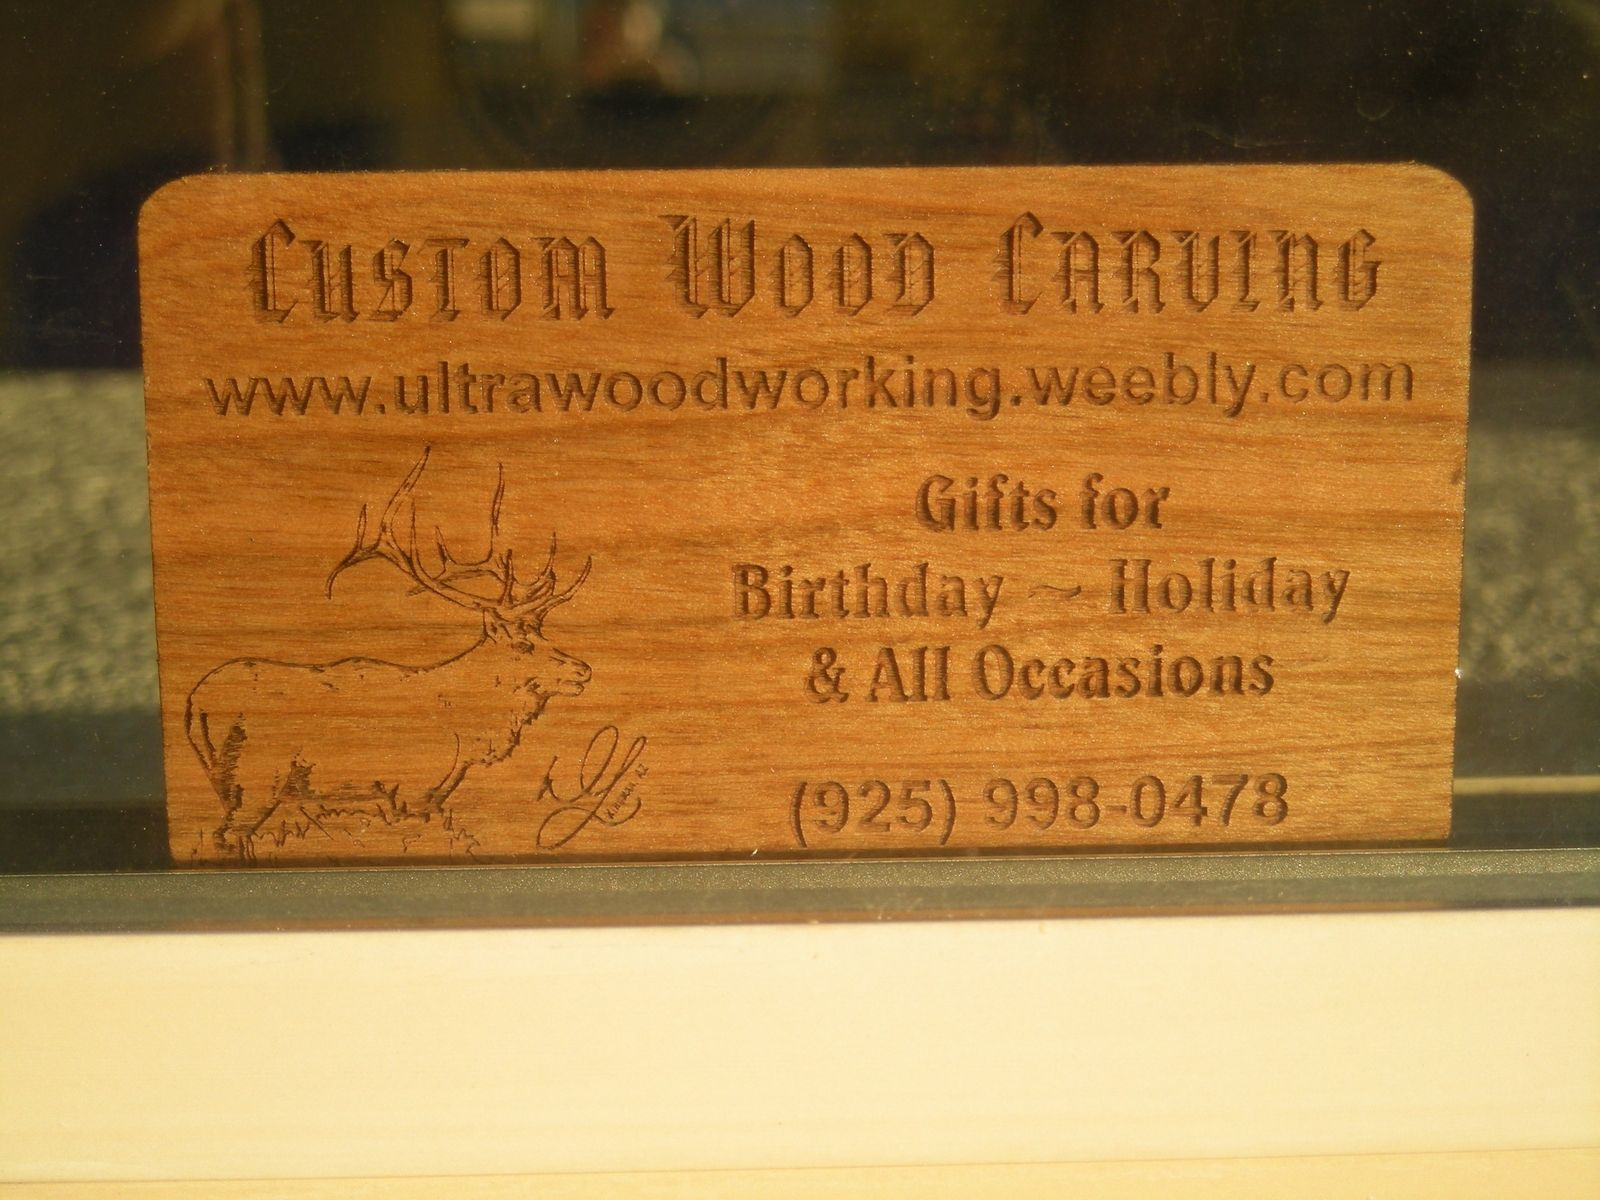 Custom made business cards by woodworking custommadecom for Woodwork business cards